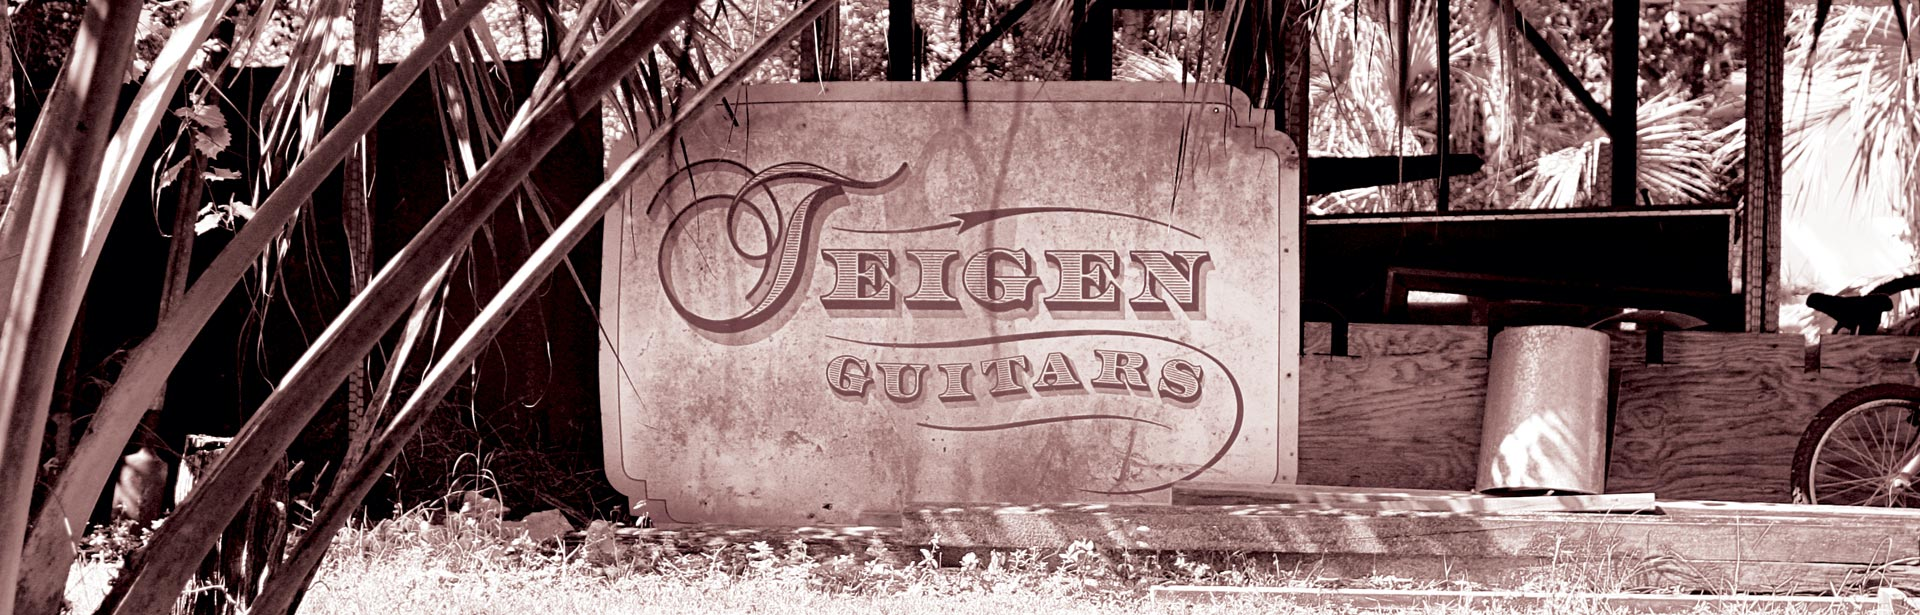 Teigen Guitars Shop Sign